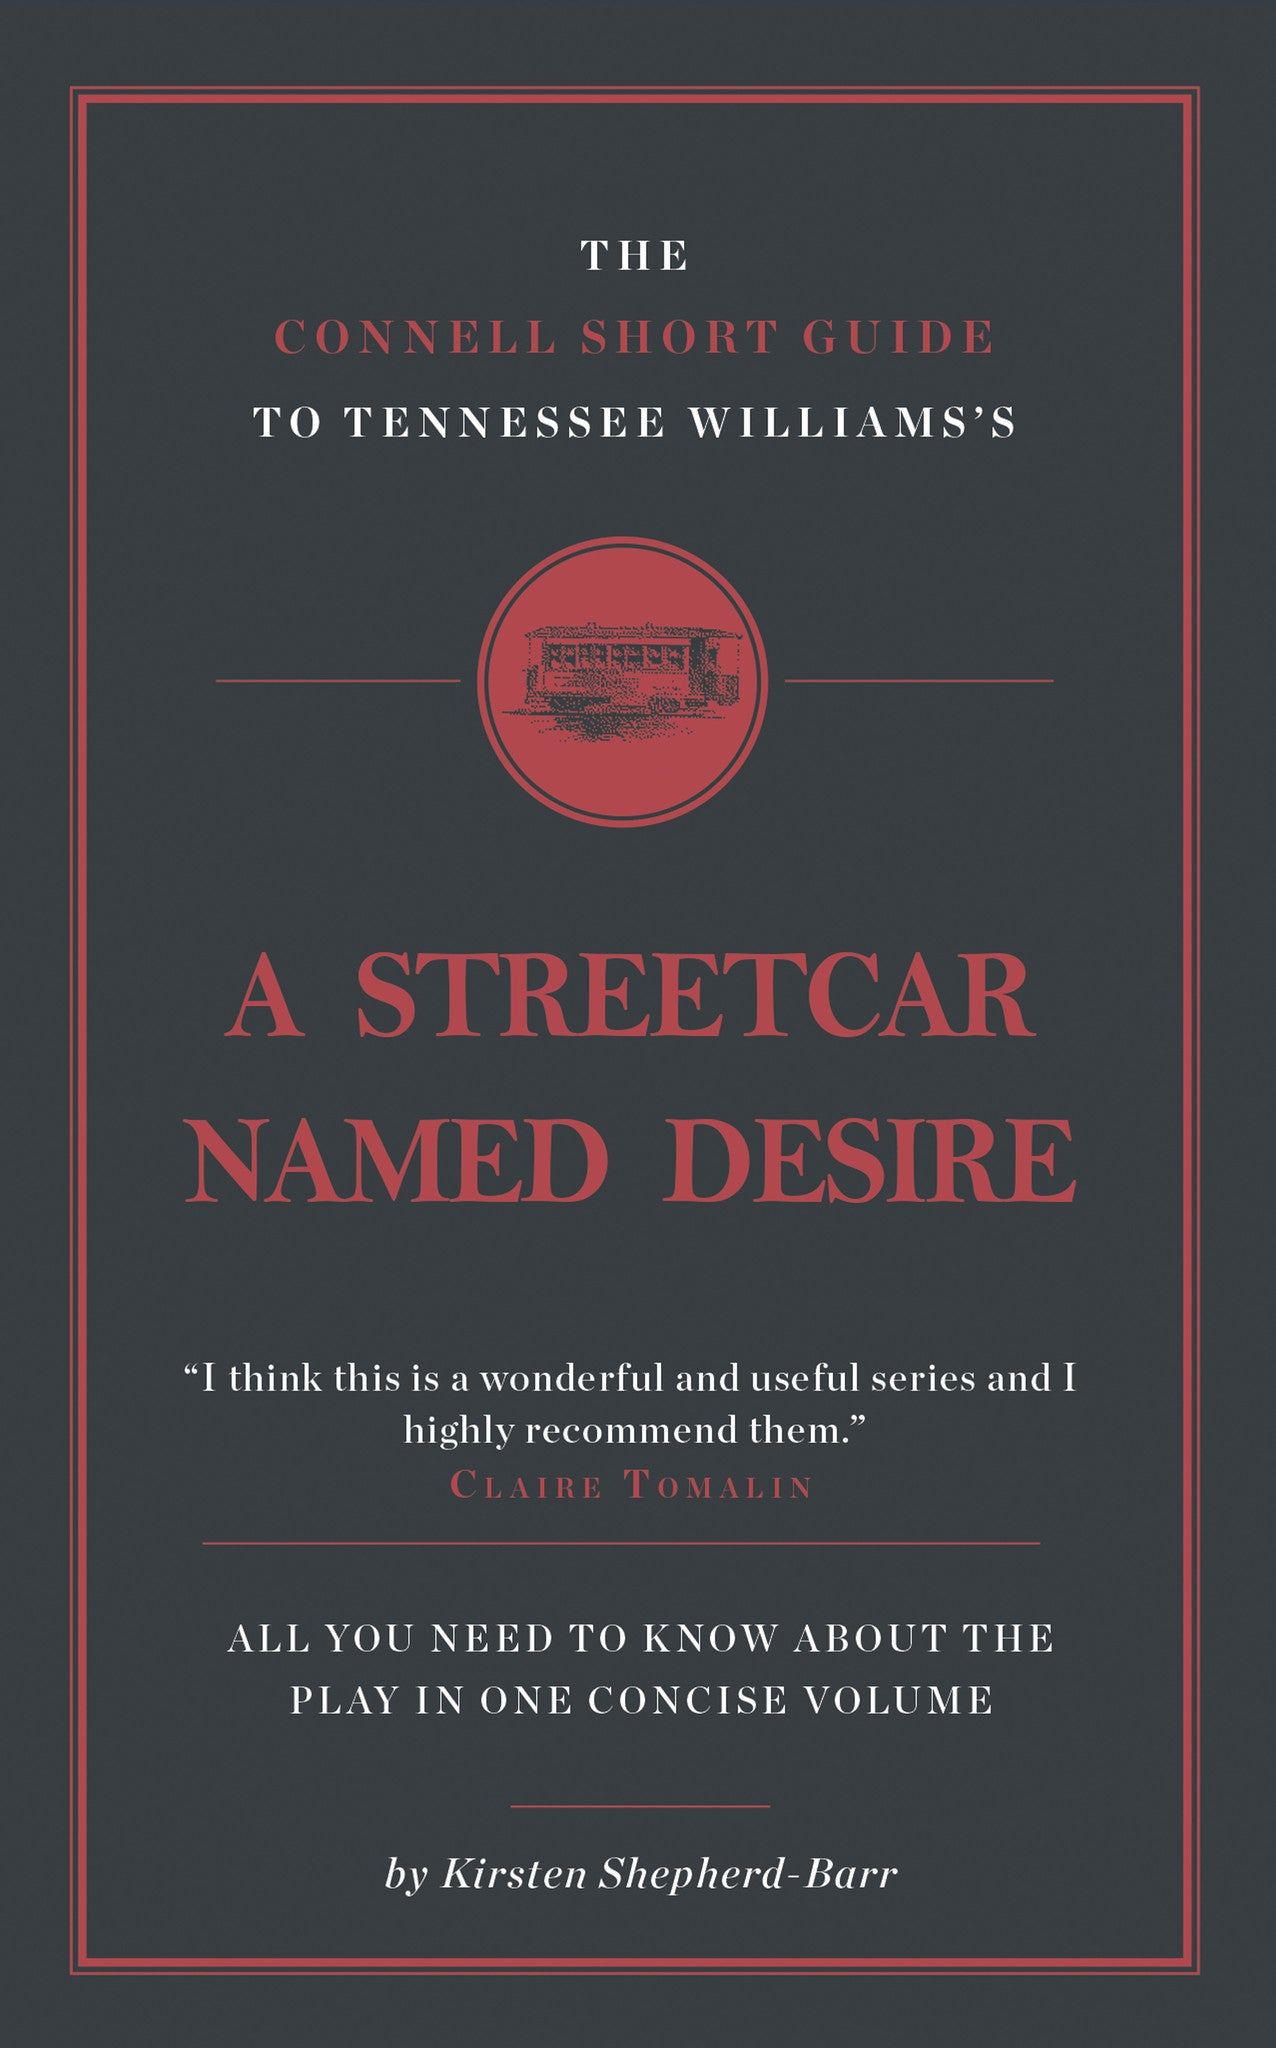 tennessee williams s a streetcar d desire short study guide tennessee williams s a streetcar d desire short study guide